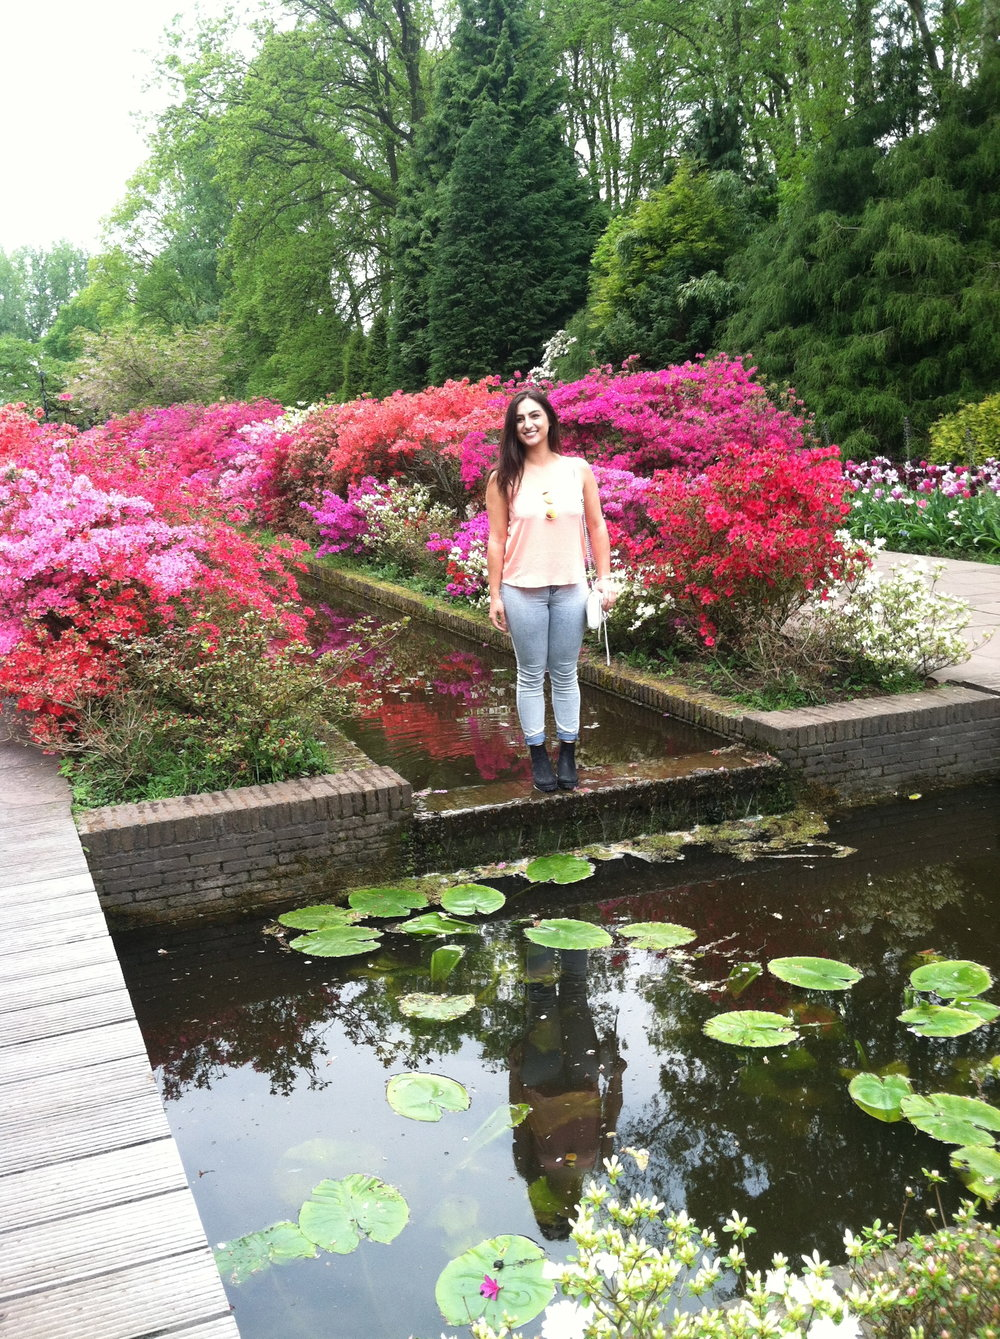 Awh, Jacqueline amidst pretty flowers.